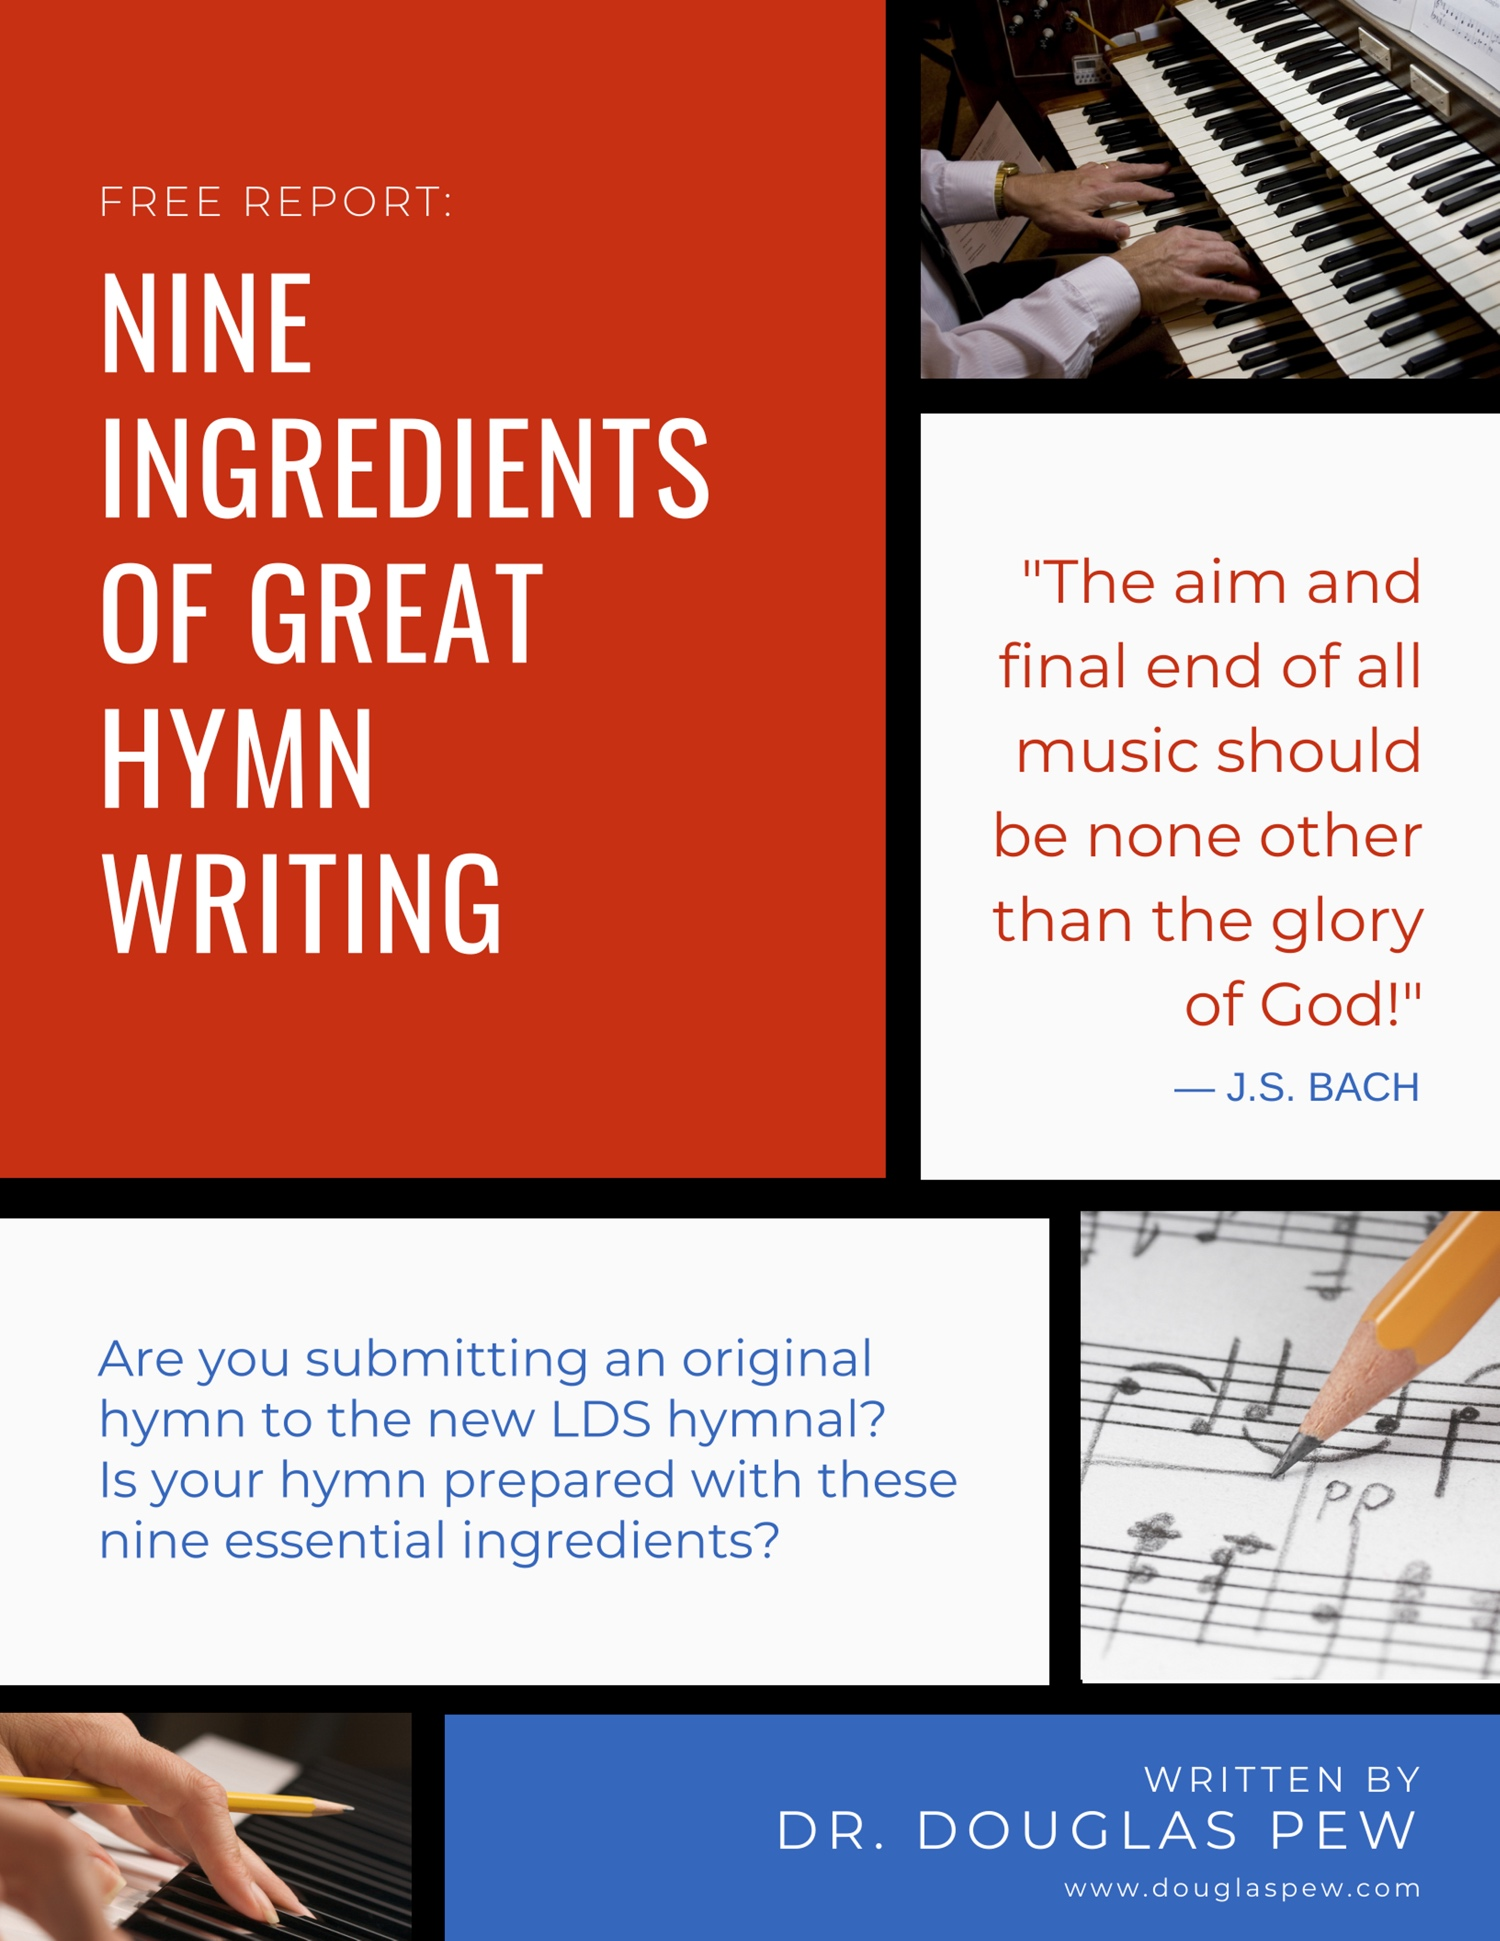 9 Element of Great Hymn Writing, cover, letter size - smaller.jpg